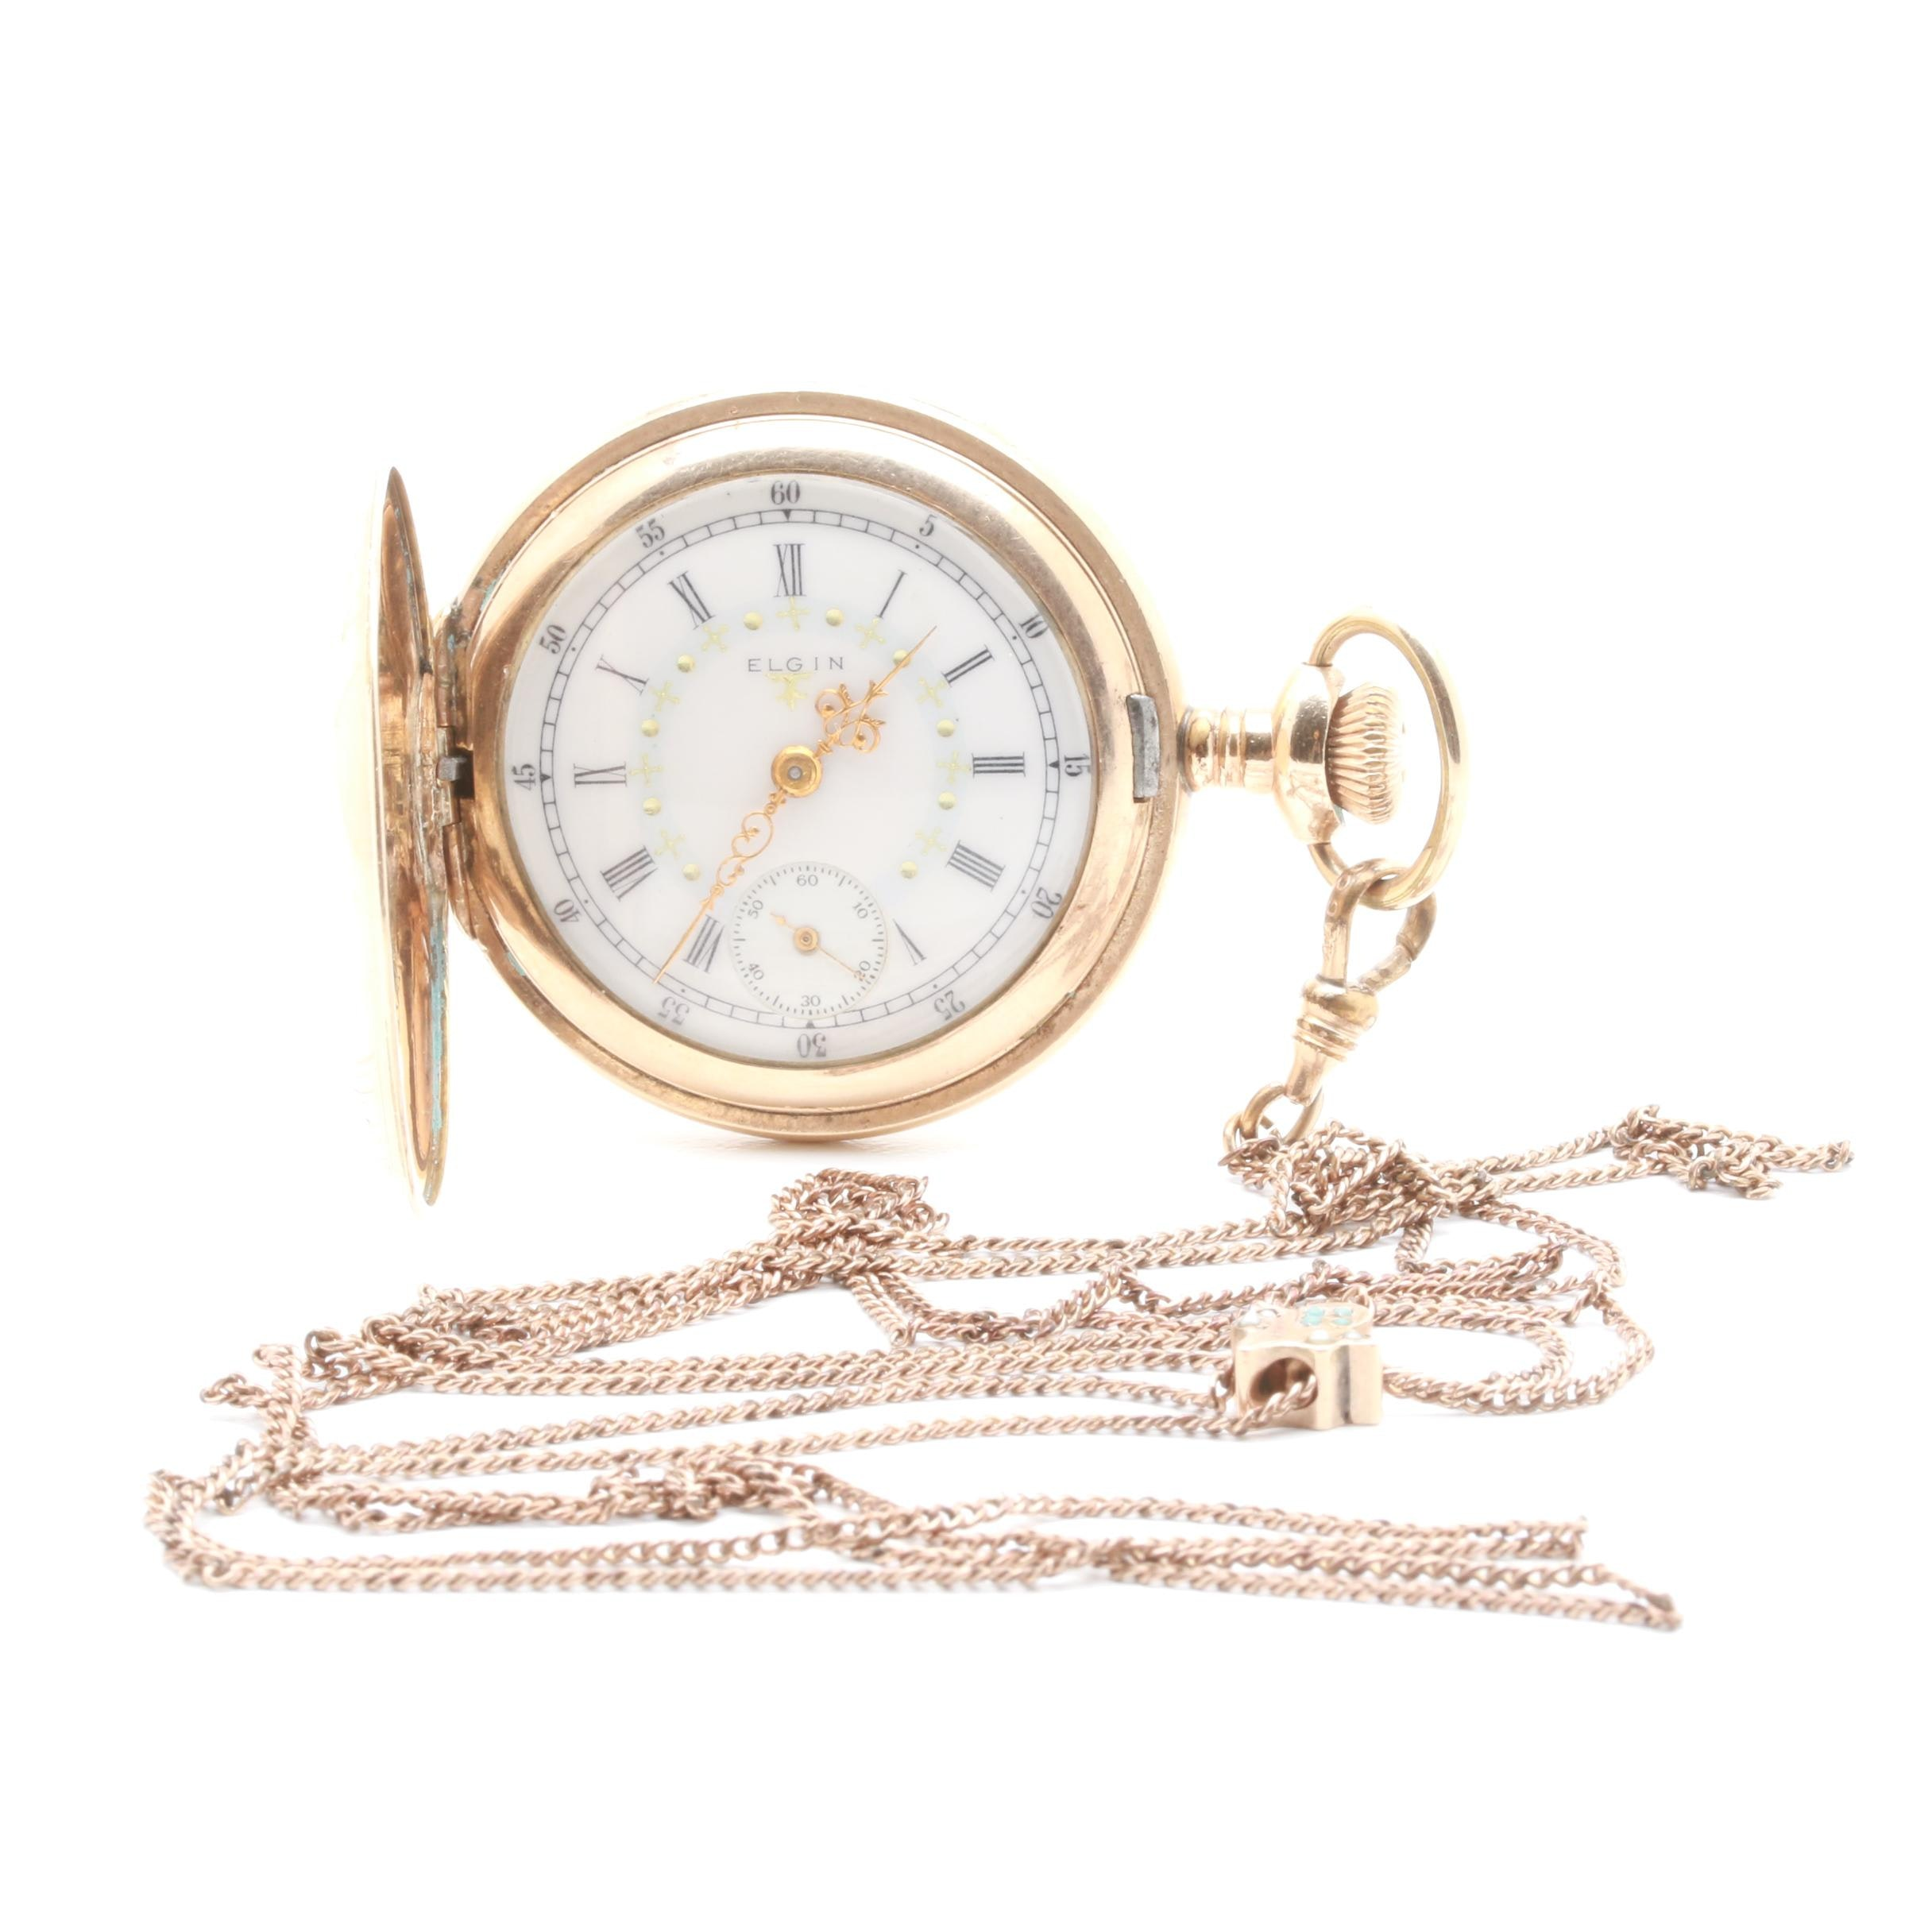 Antique Elgin Gold-Filled White Dial Pocket Watch with Fob